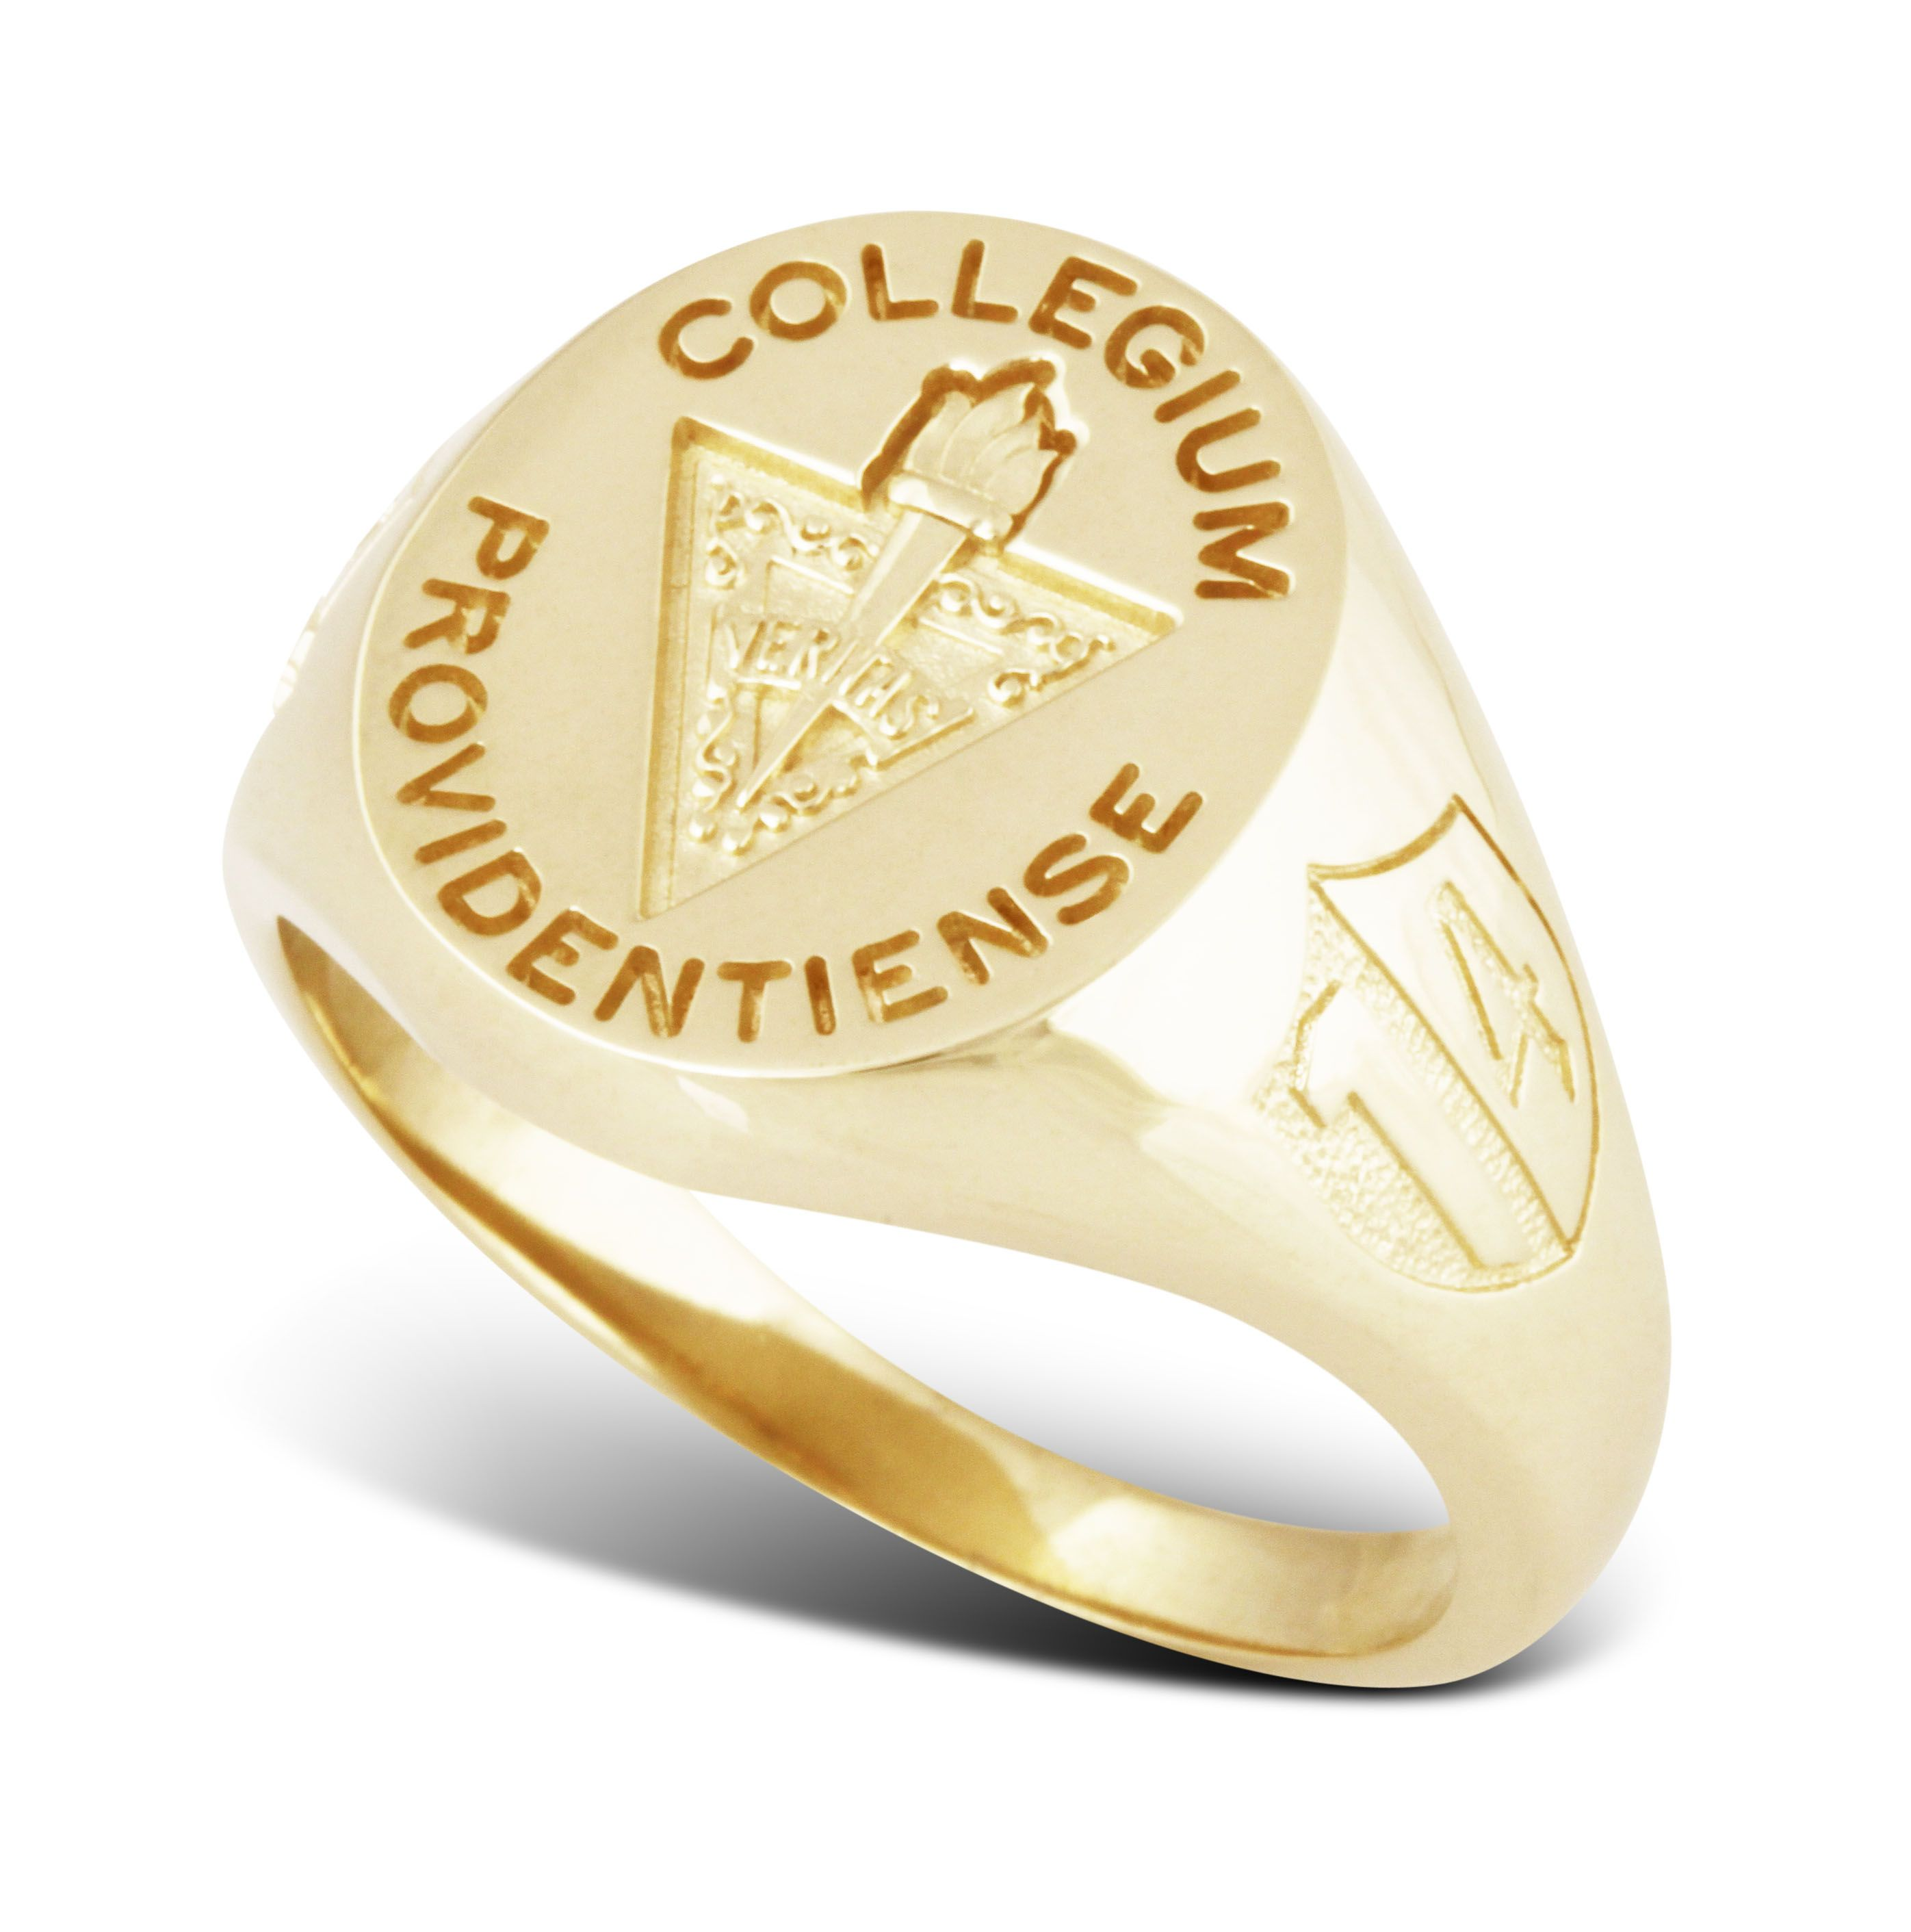 pt oval gold rings category collegiate salle college sbmai untitled la saint of bsn class ring university product